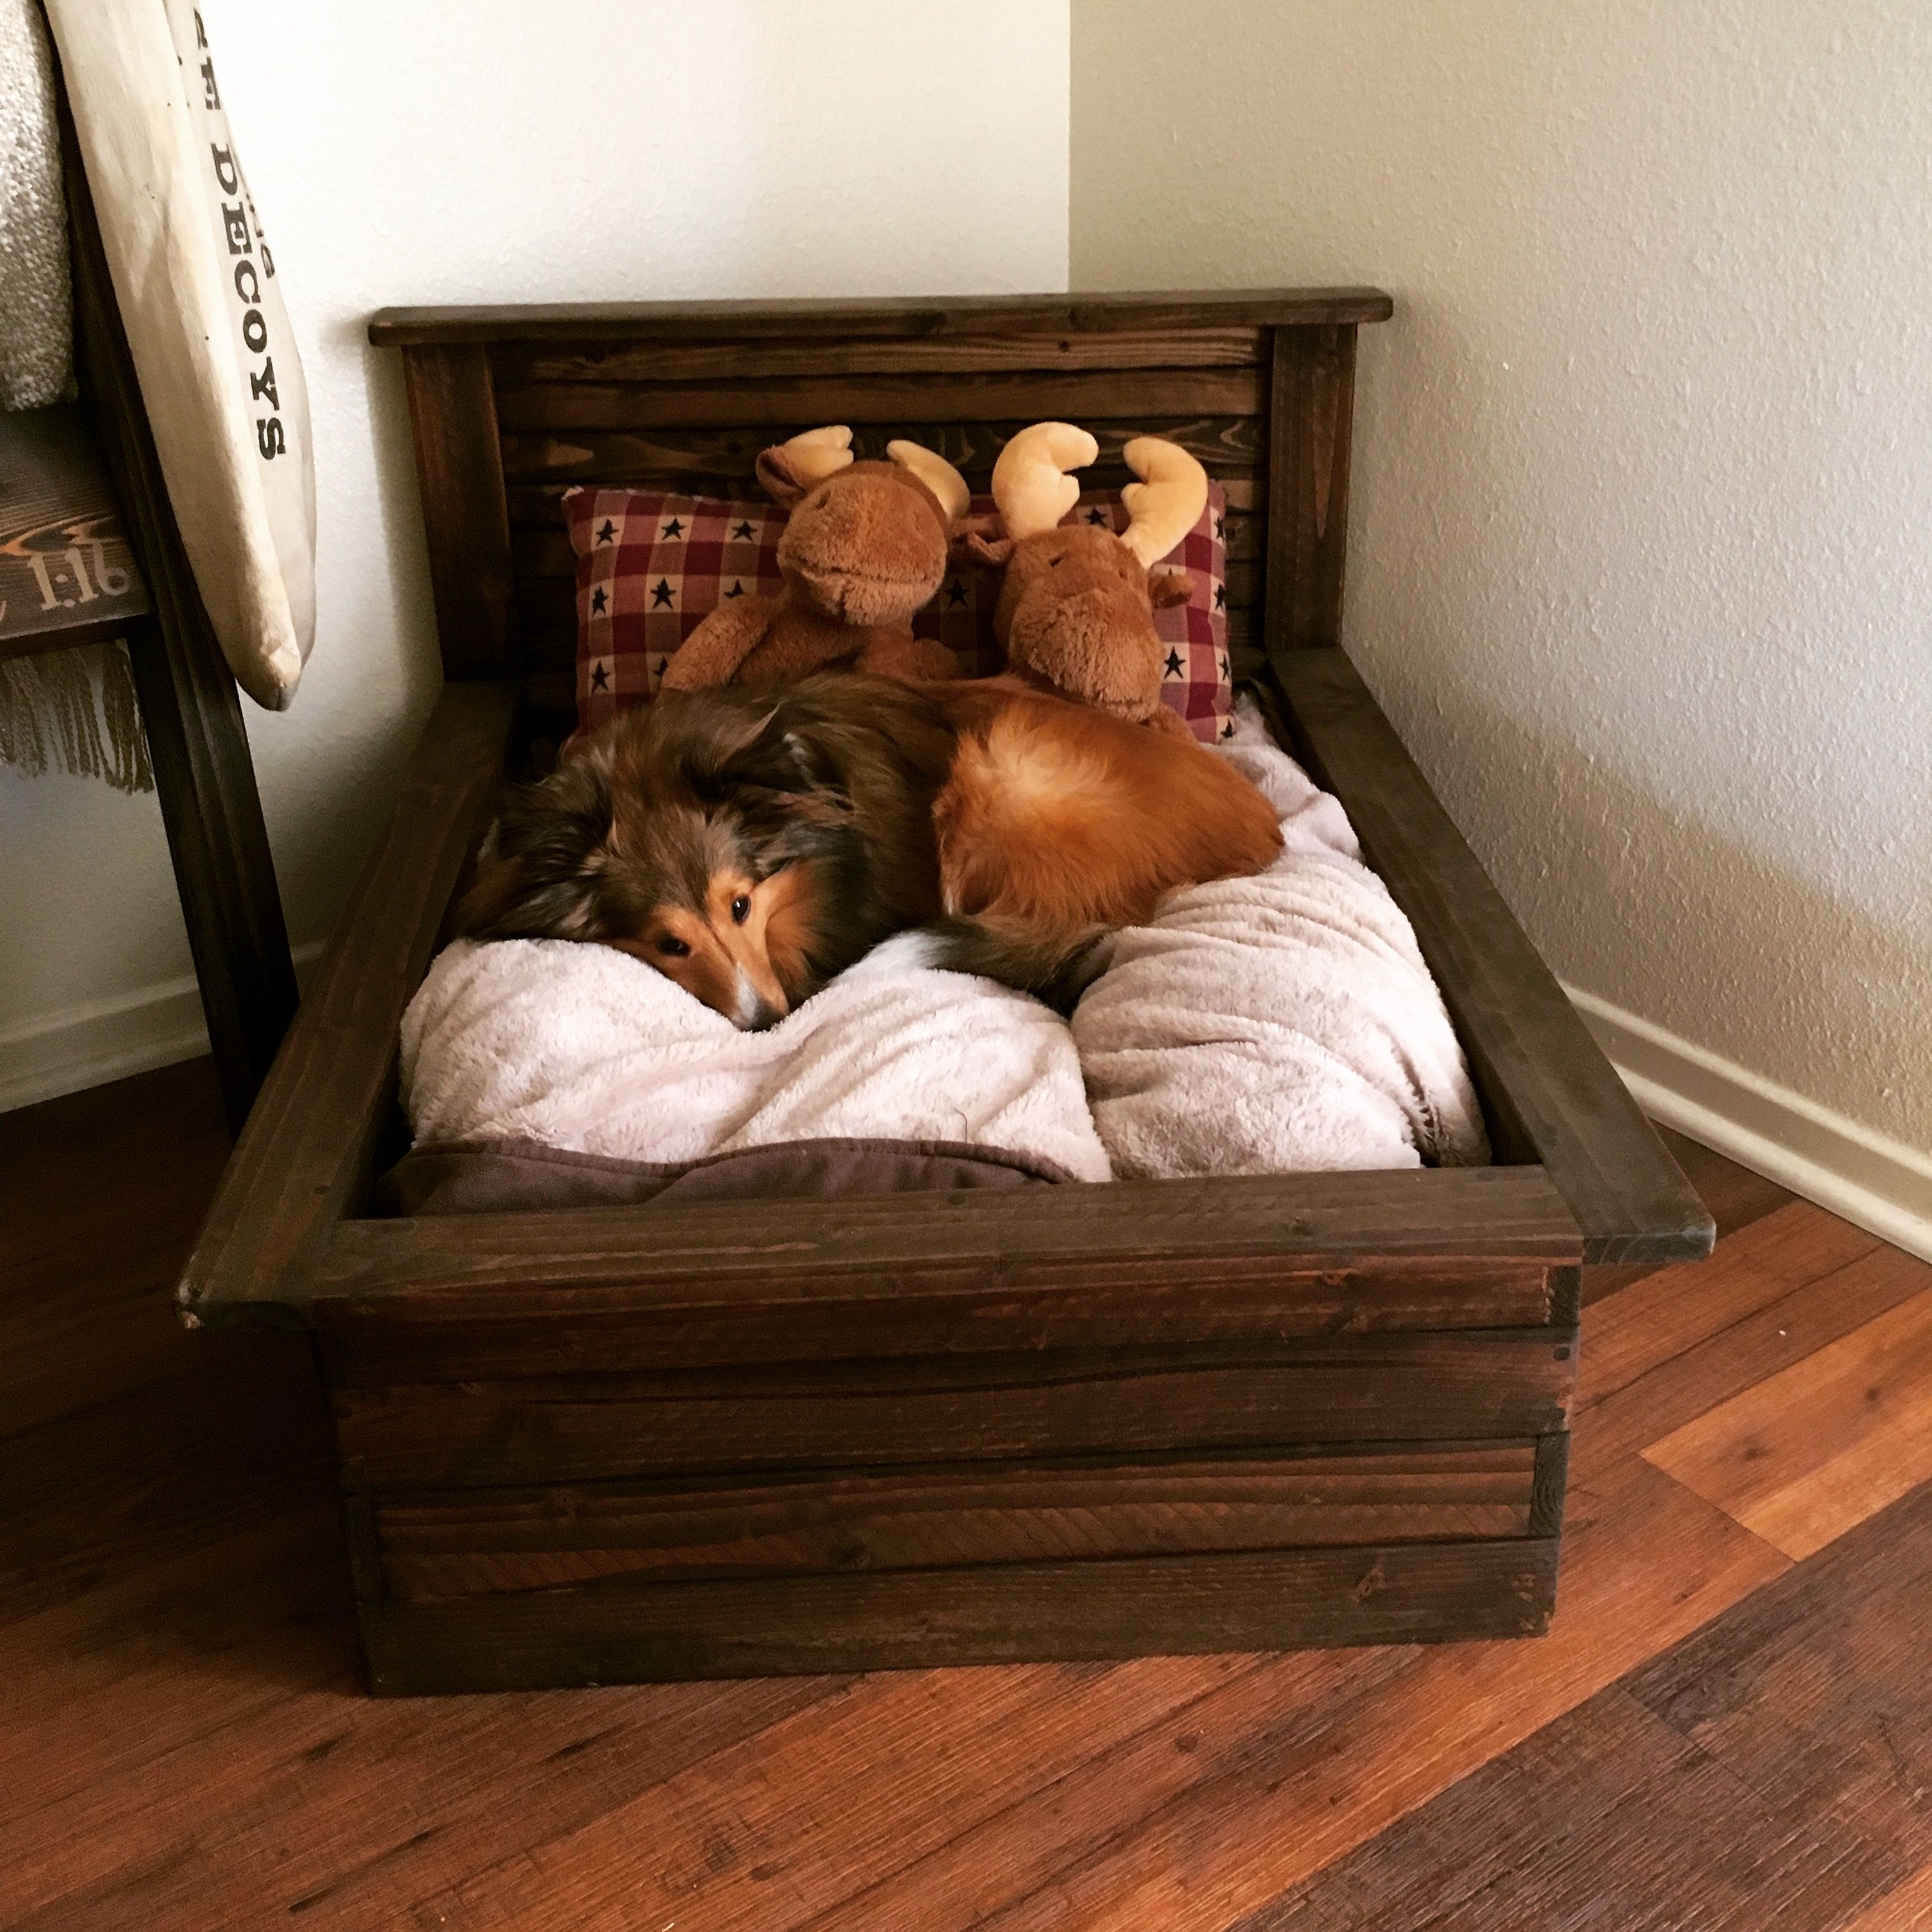 Bear Mountain Wood Products Dog Bed Frame Cute Dog Beds Dog Bed Large Dog Bed Frame